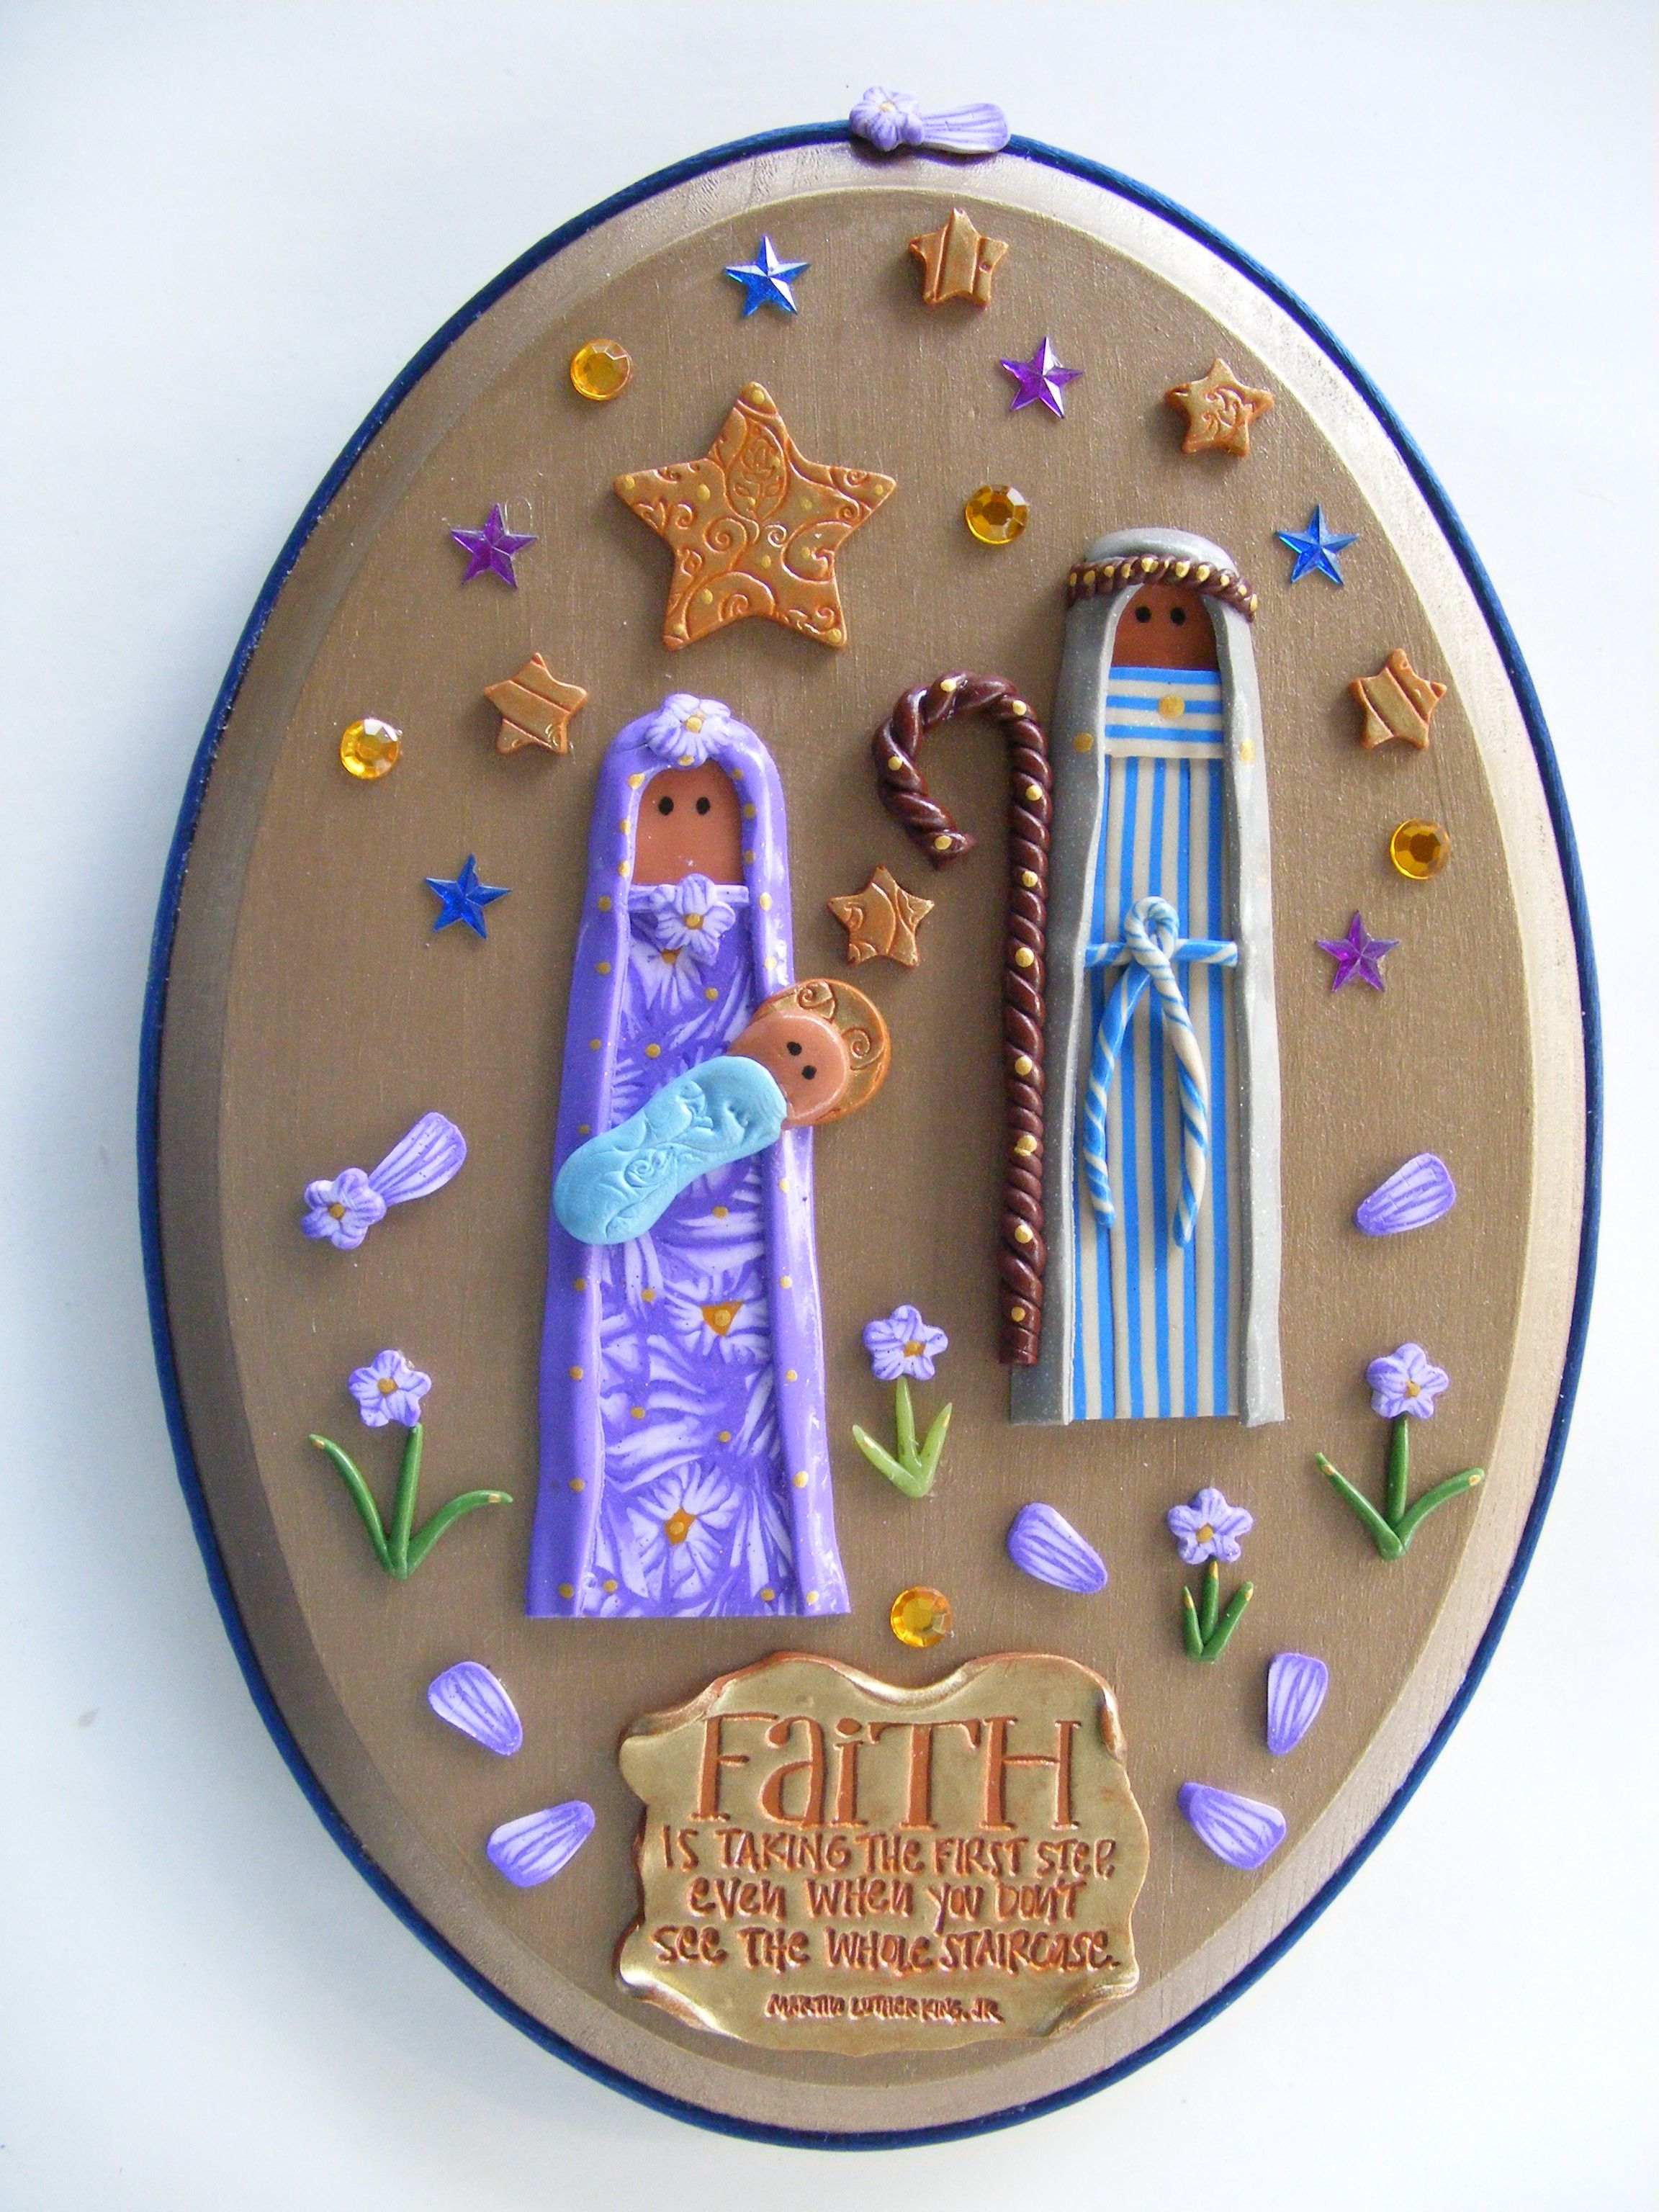 Nativity scene in polymer clay on wood plaque